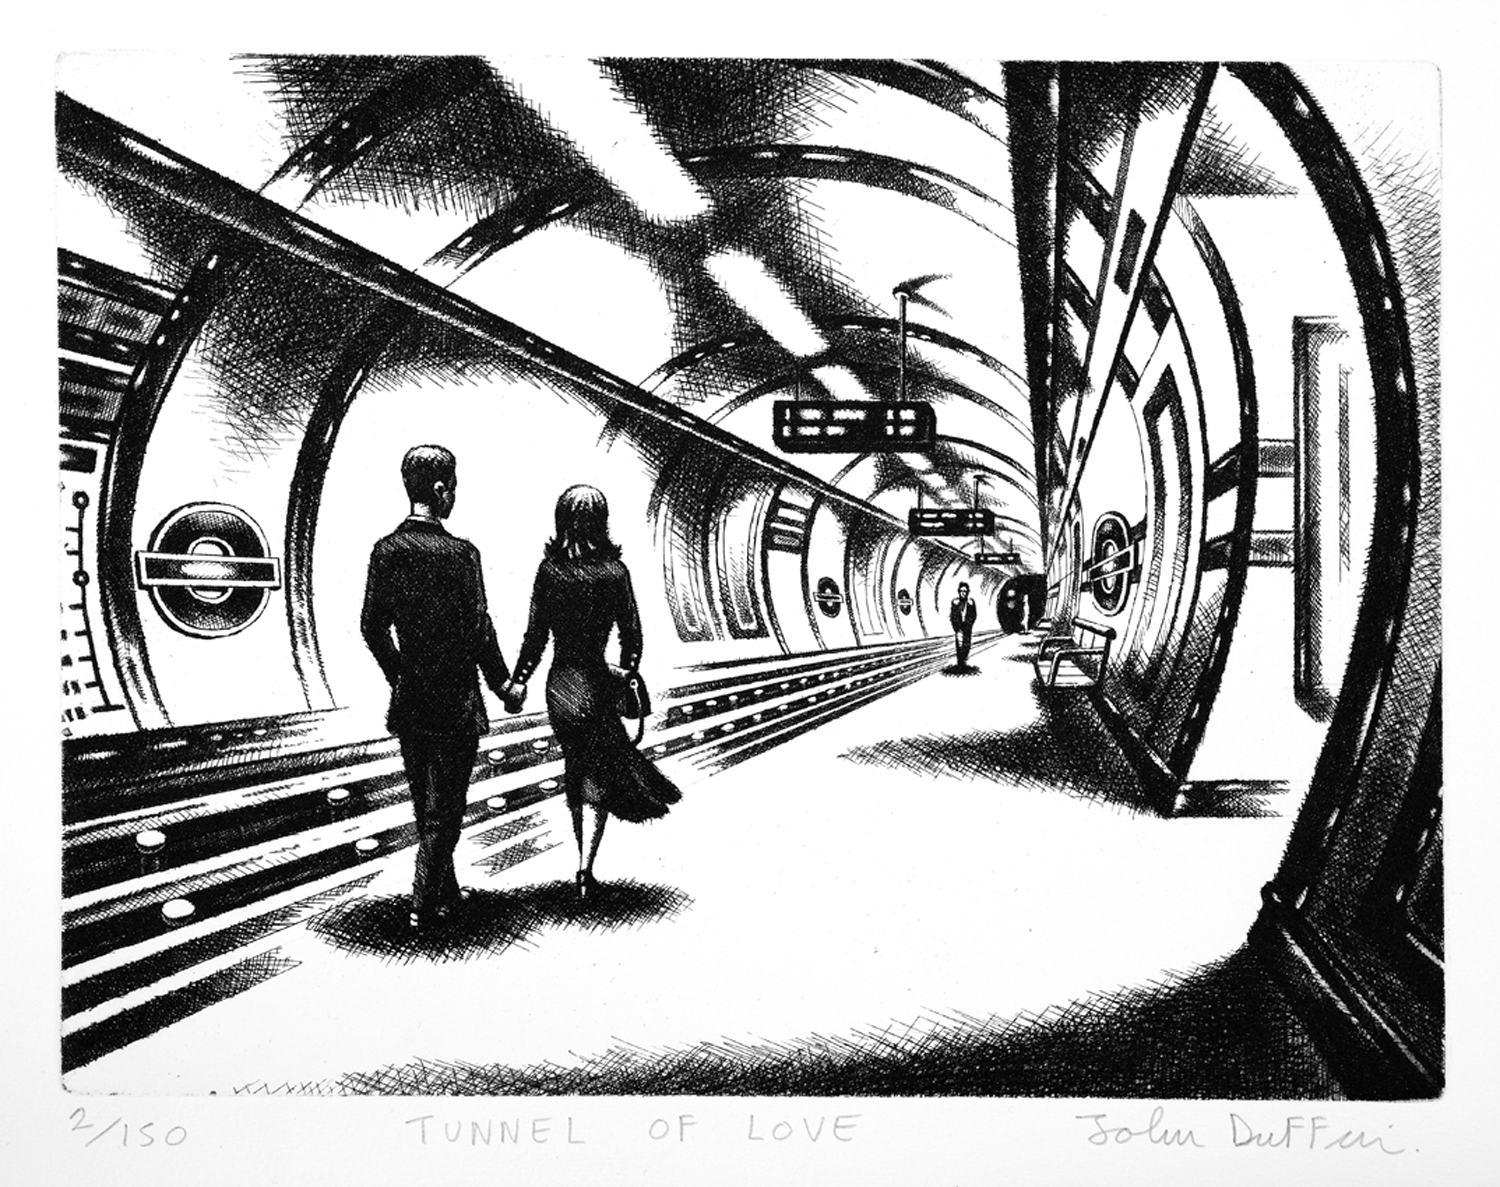 Tunnel of Love   etching   22 x 29 cm  £195 (unframed)